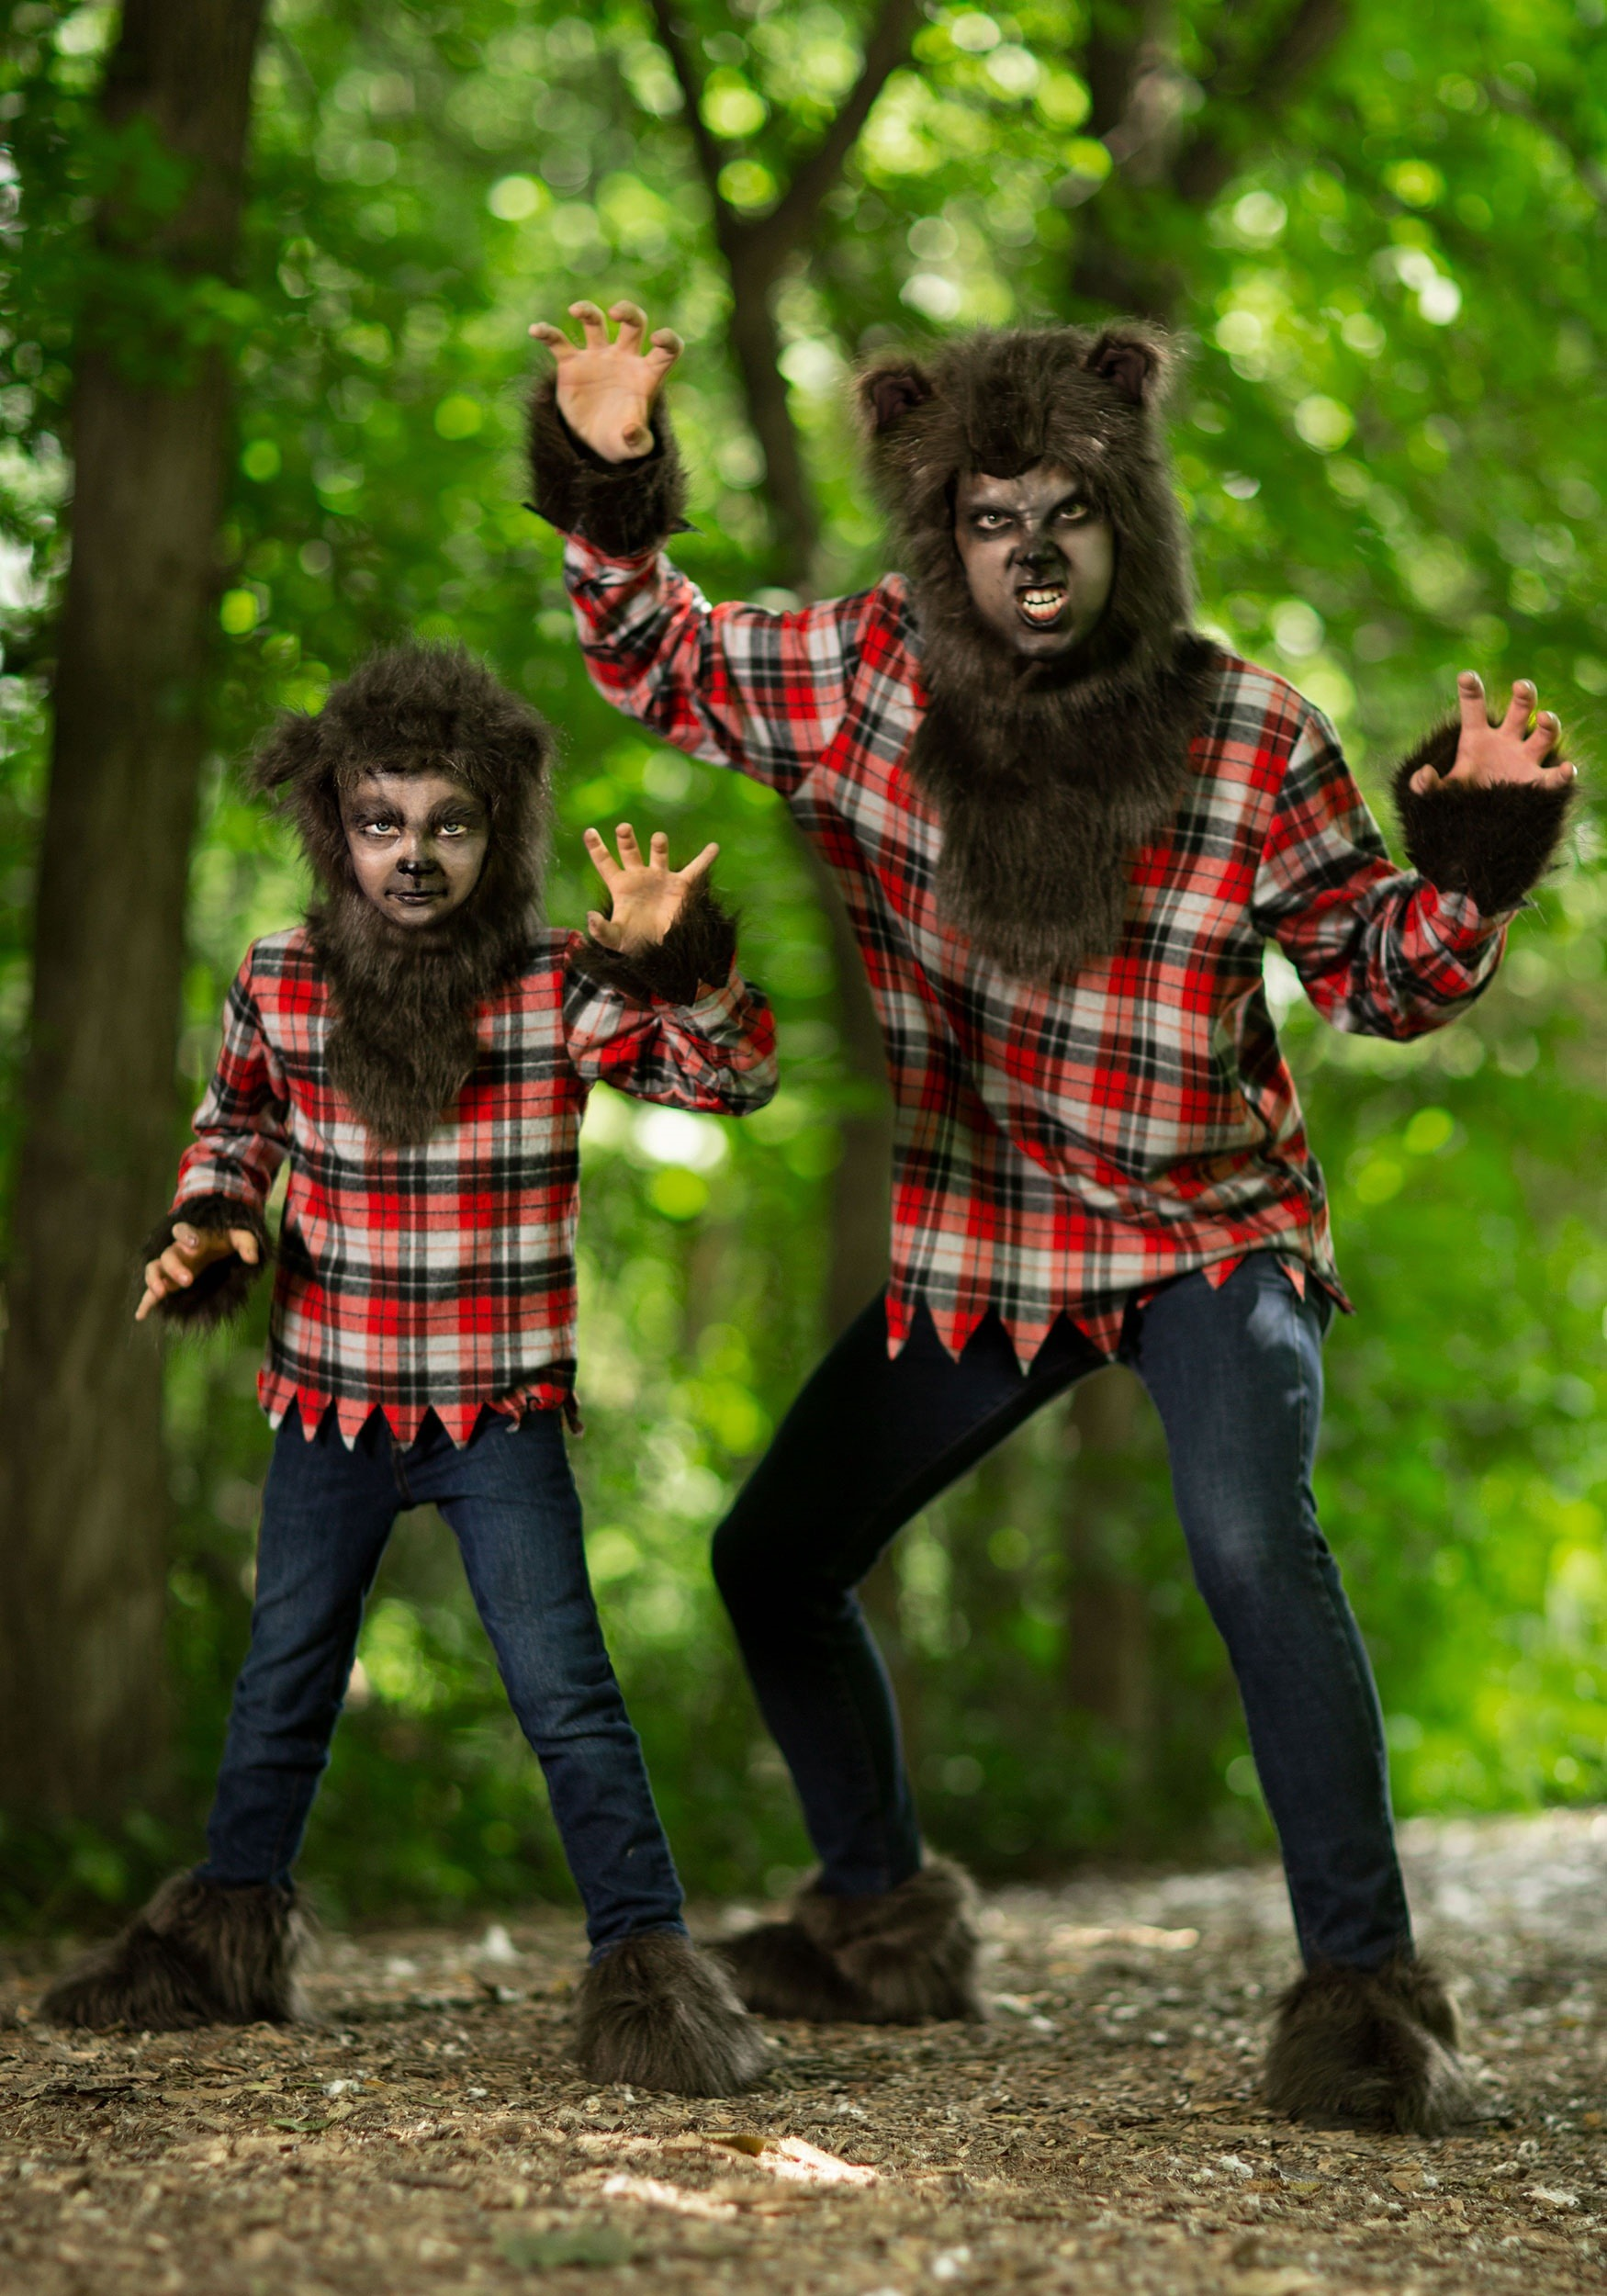 Kids Fierce Werewolf Costume Kids Fierce Werewolf Costume ...  sc 1 st  Halloween Costumes & Fierce Werewolf Costume for Boys